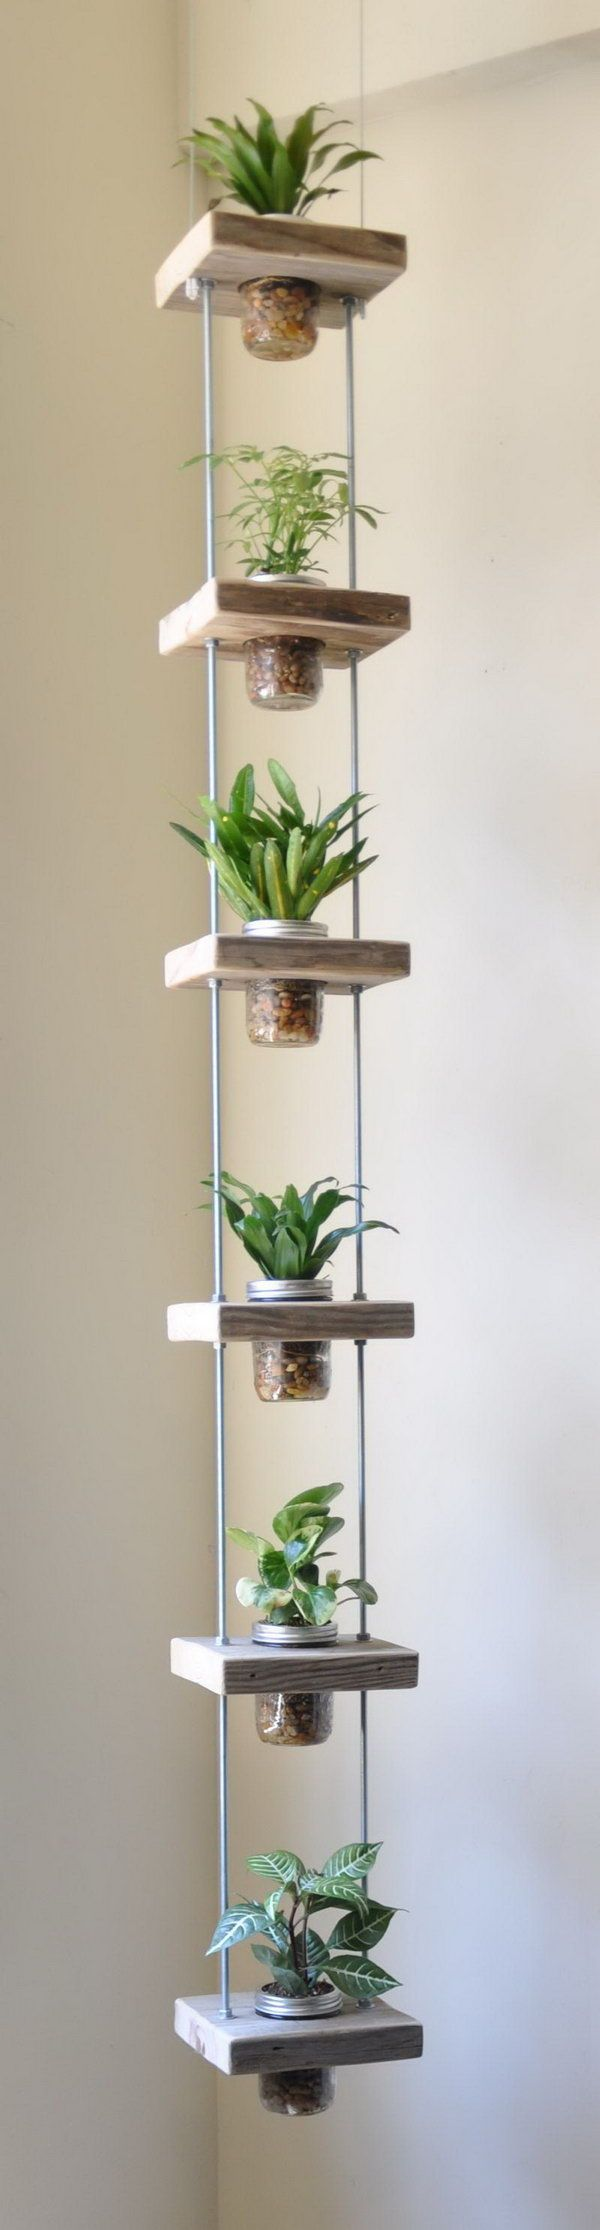 vertical herb garden from salvaged wood and mason jars, Cool DIY Indoor Herb Garden Ideas, http://hative.com/cool-diy-indoor-herb-garden-ideas/,: